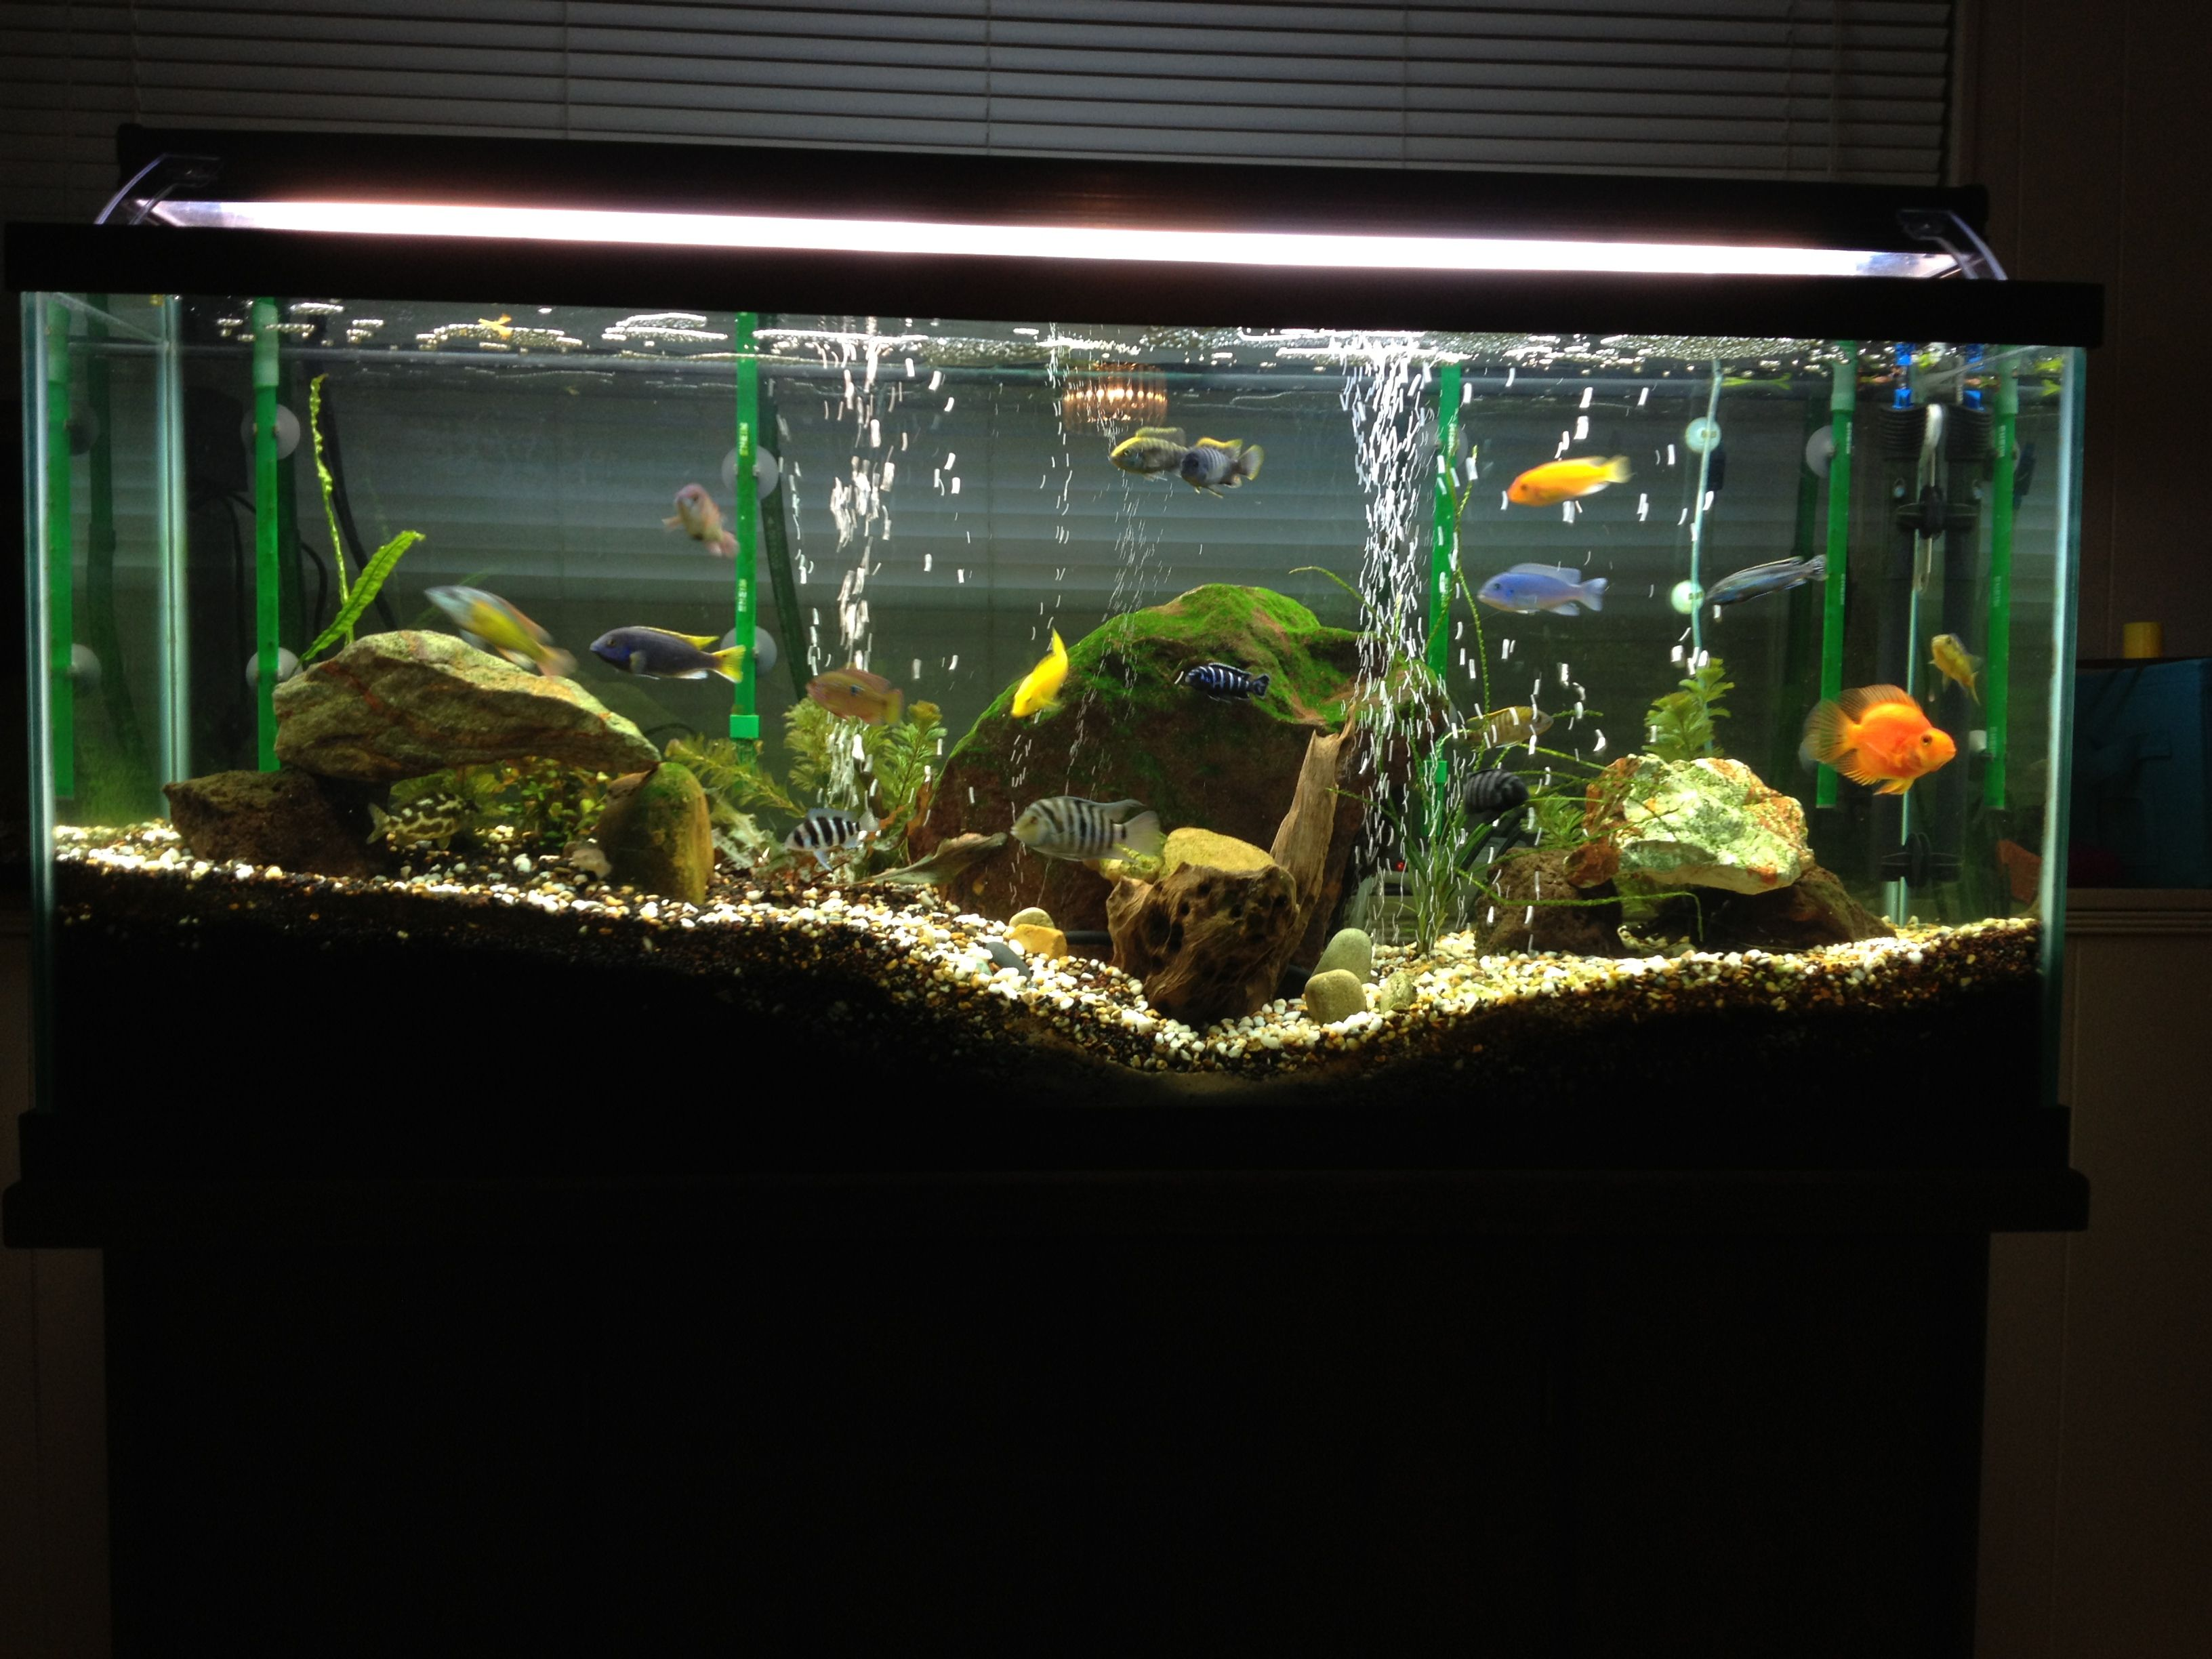 Cichlid aquarium with live plants.